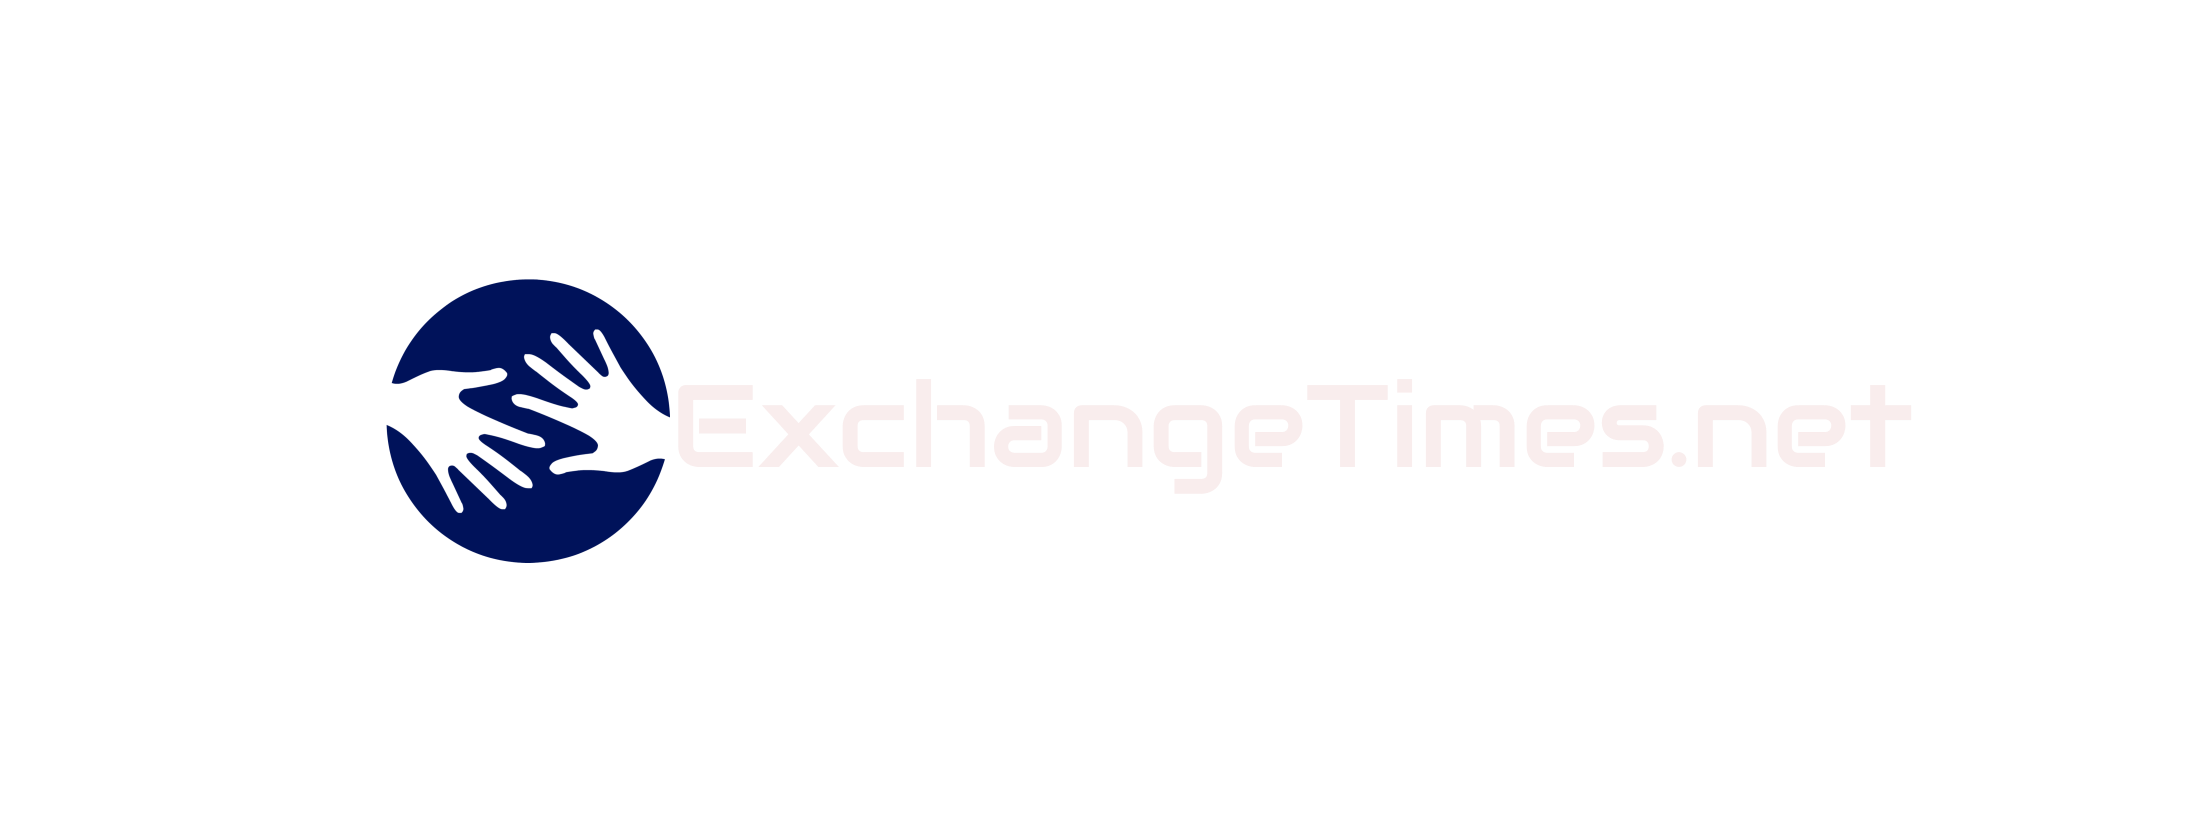 Exchange Times